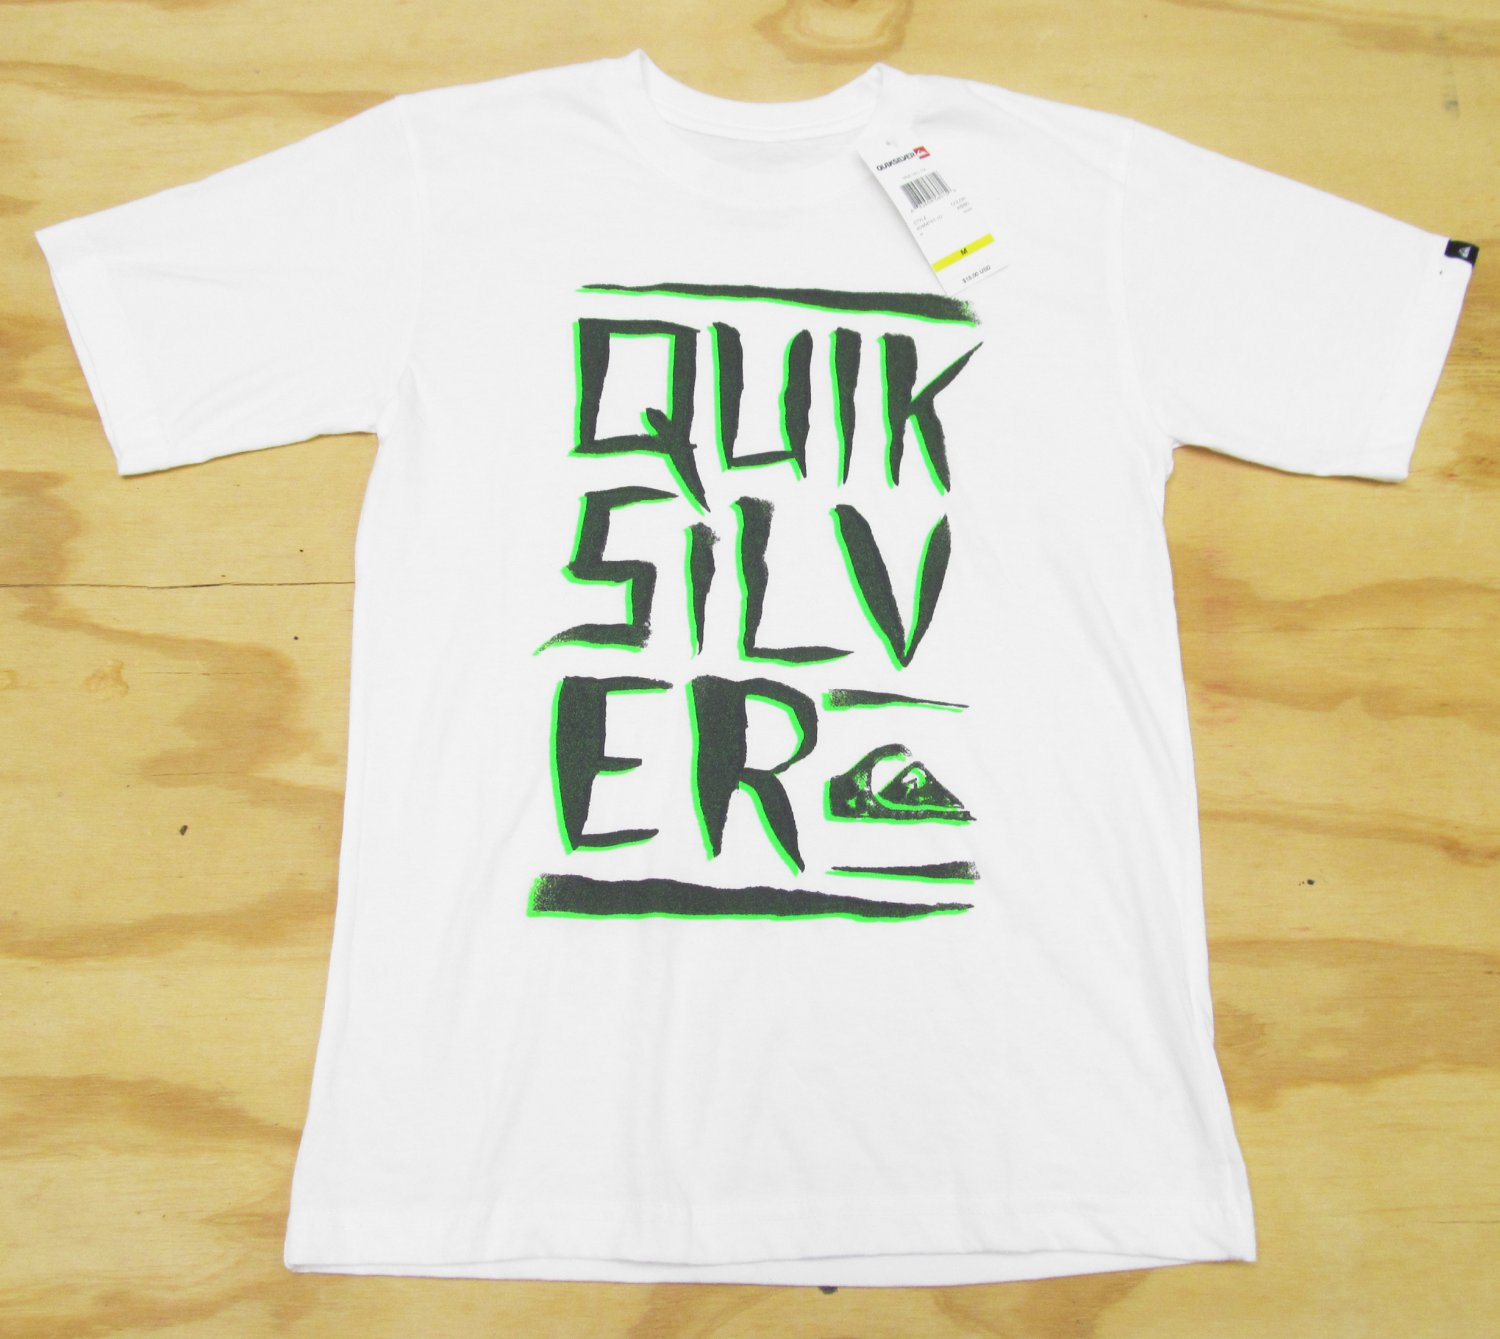 Quiksilver Boys size M True Call Tee White Short Sleeve T-shirt with Green Logo Youth Boy's